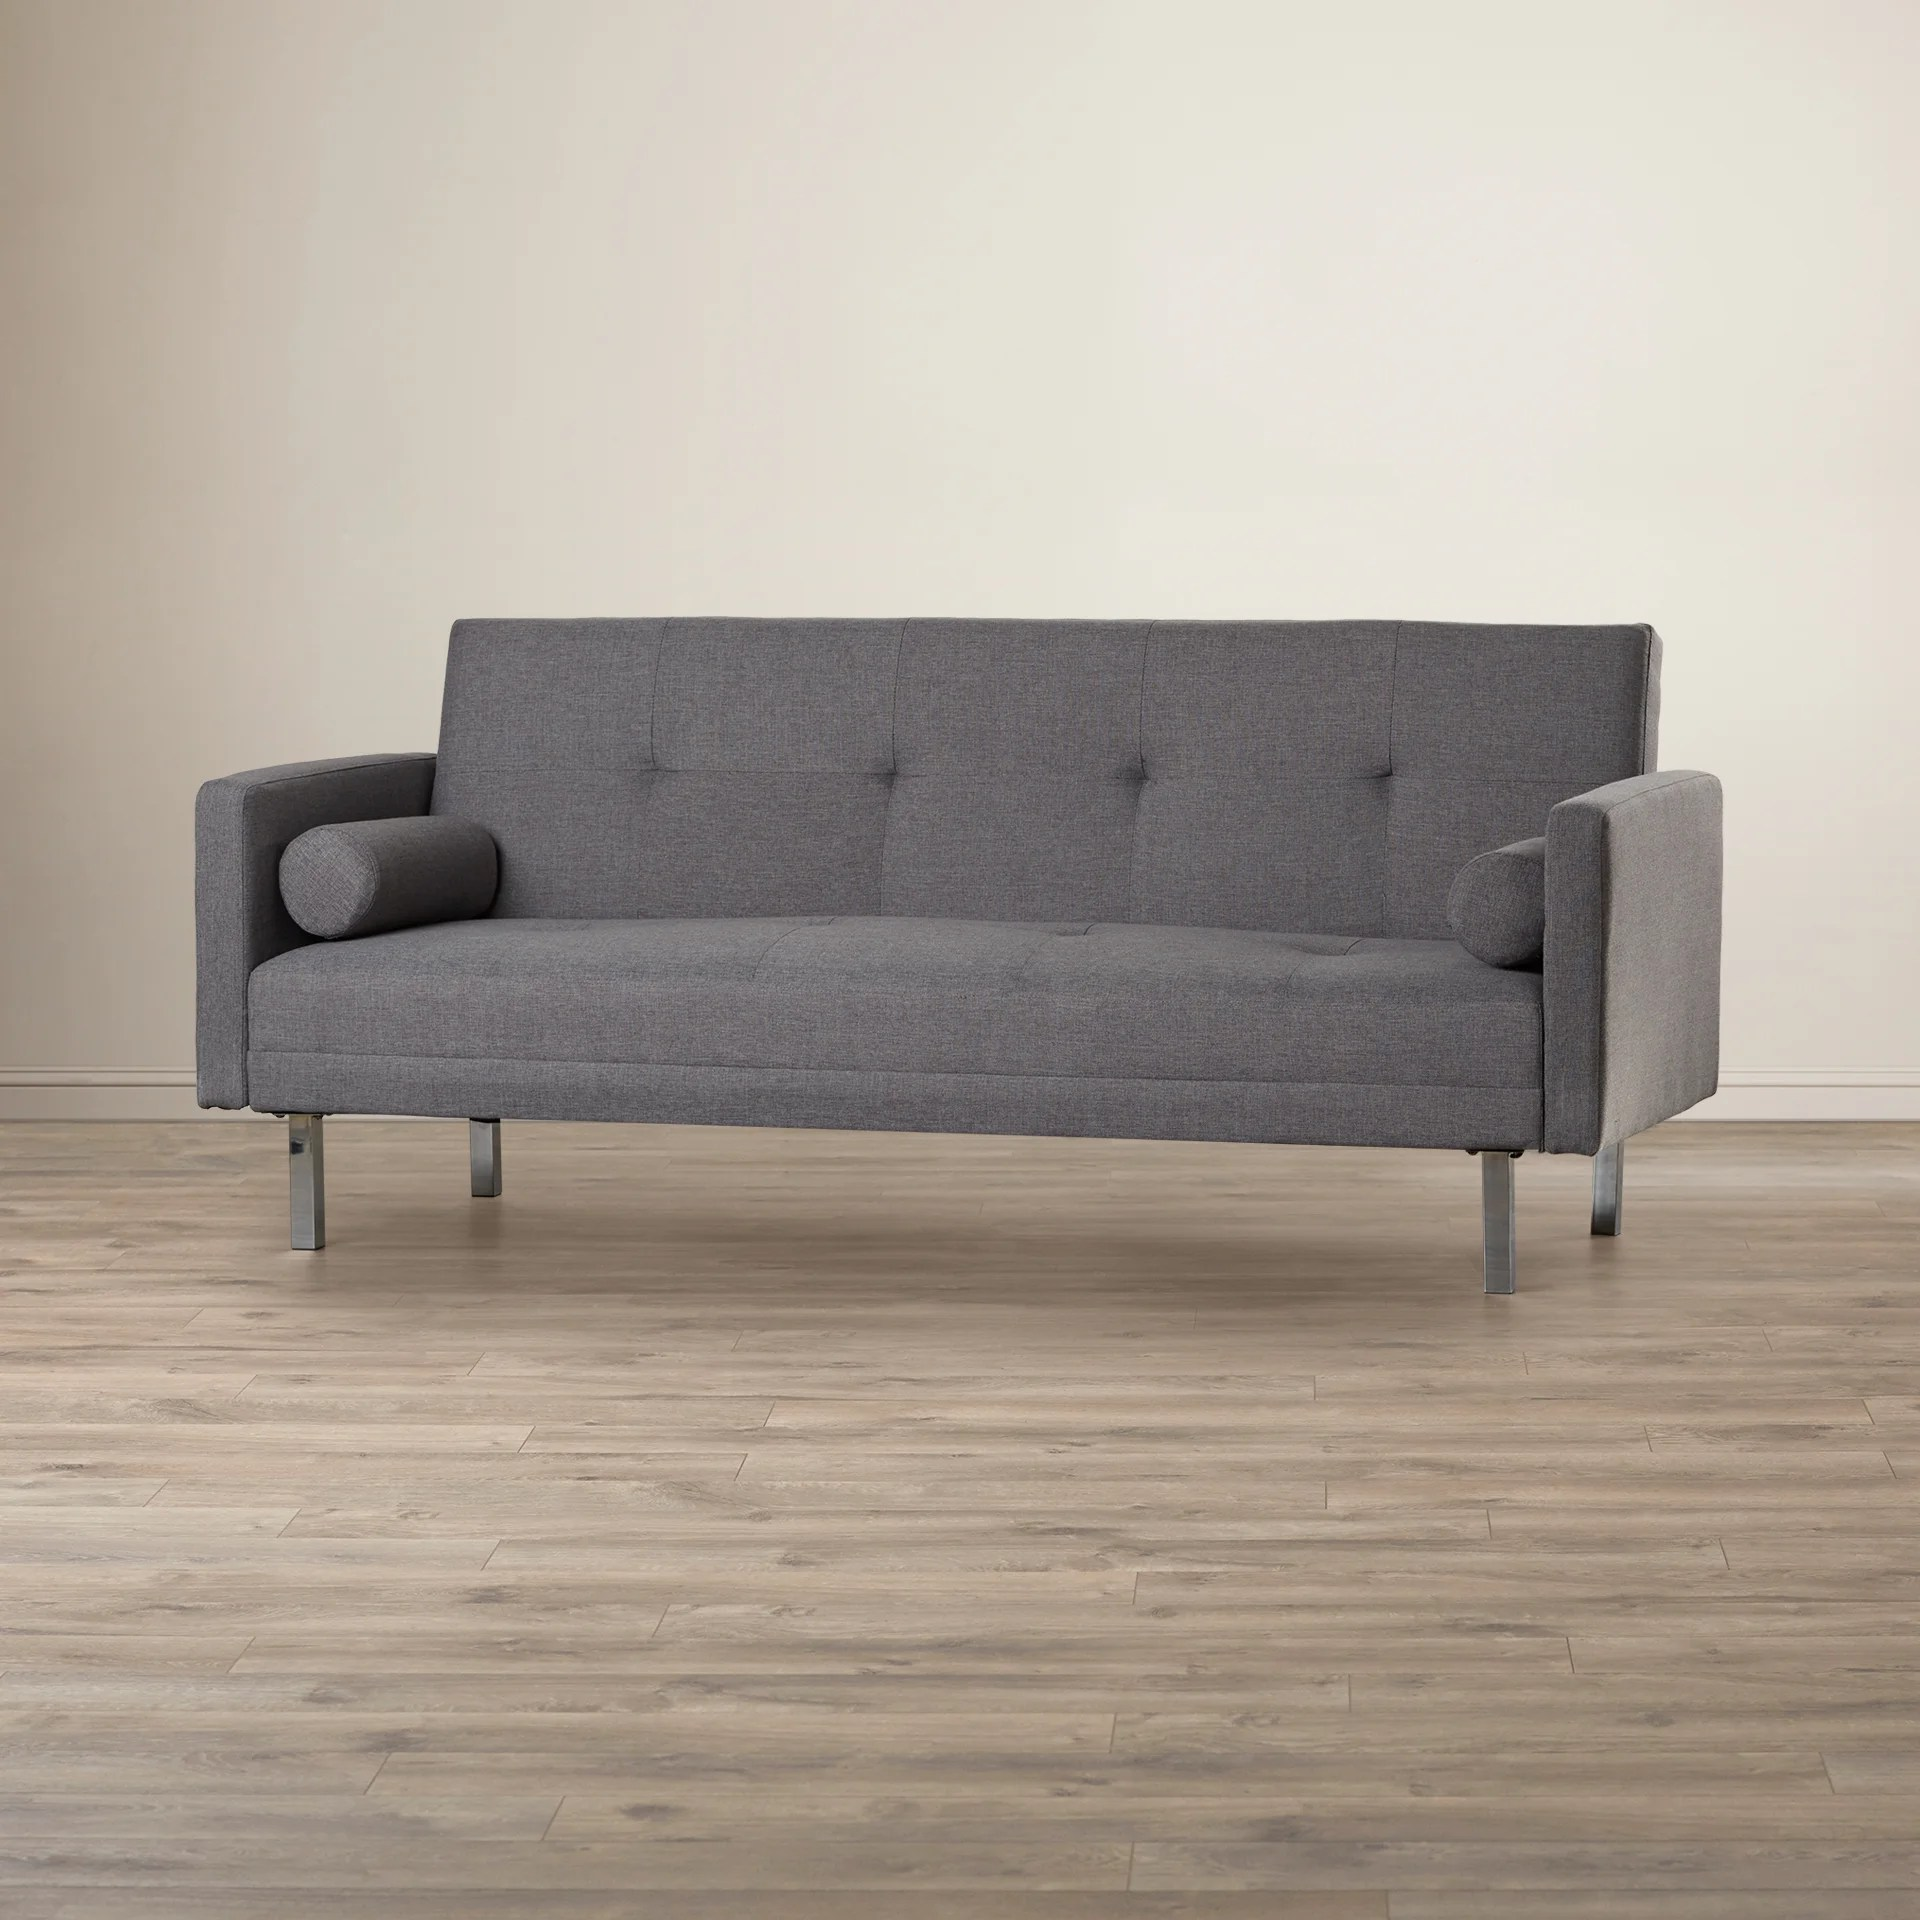 england monroe sofa reviews gray leather chesterfield riley ave rachel 3 seater clic clac bed and